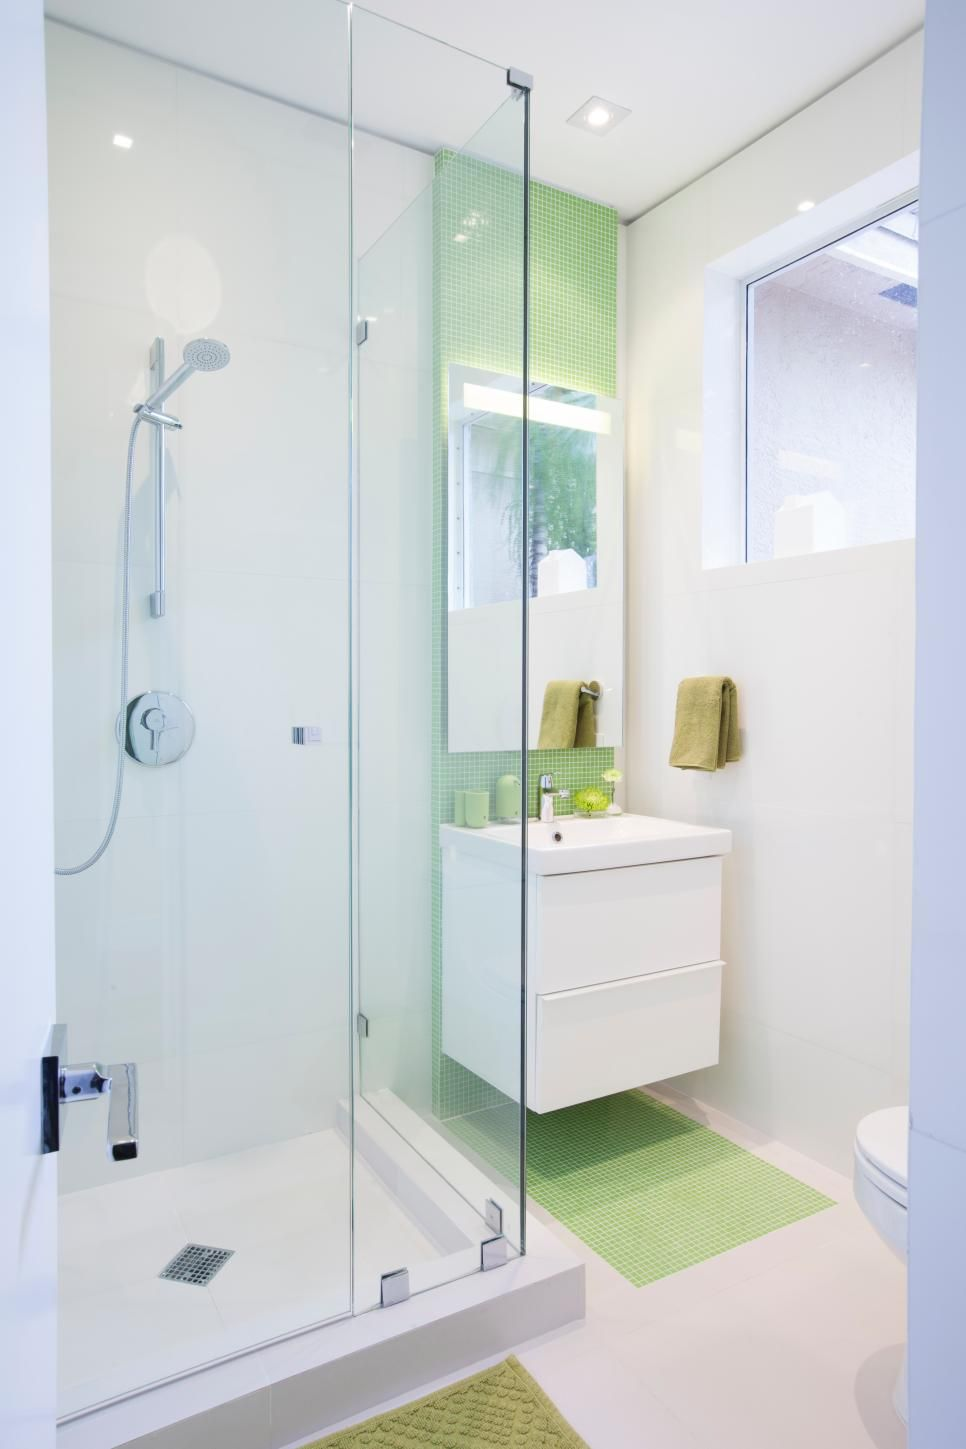 Drawing stylish green glass tile down from the ceiling and across ...